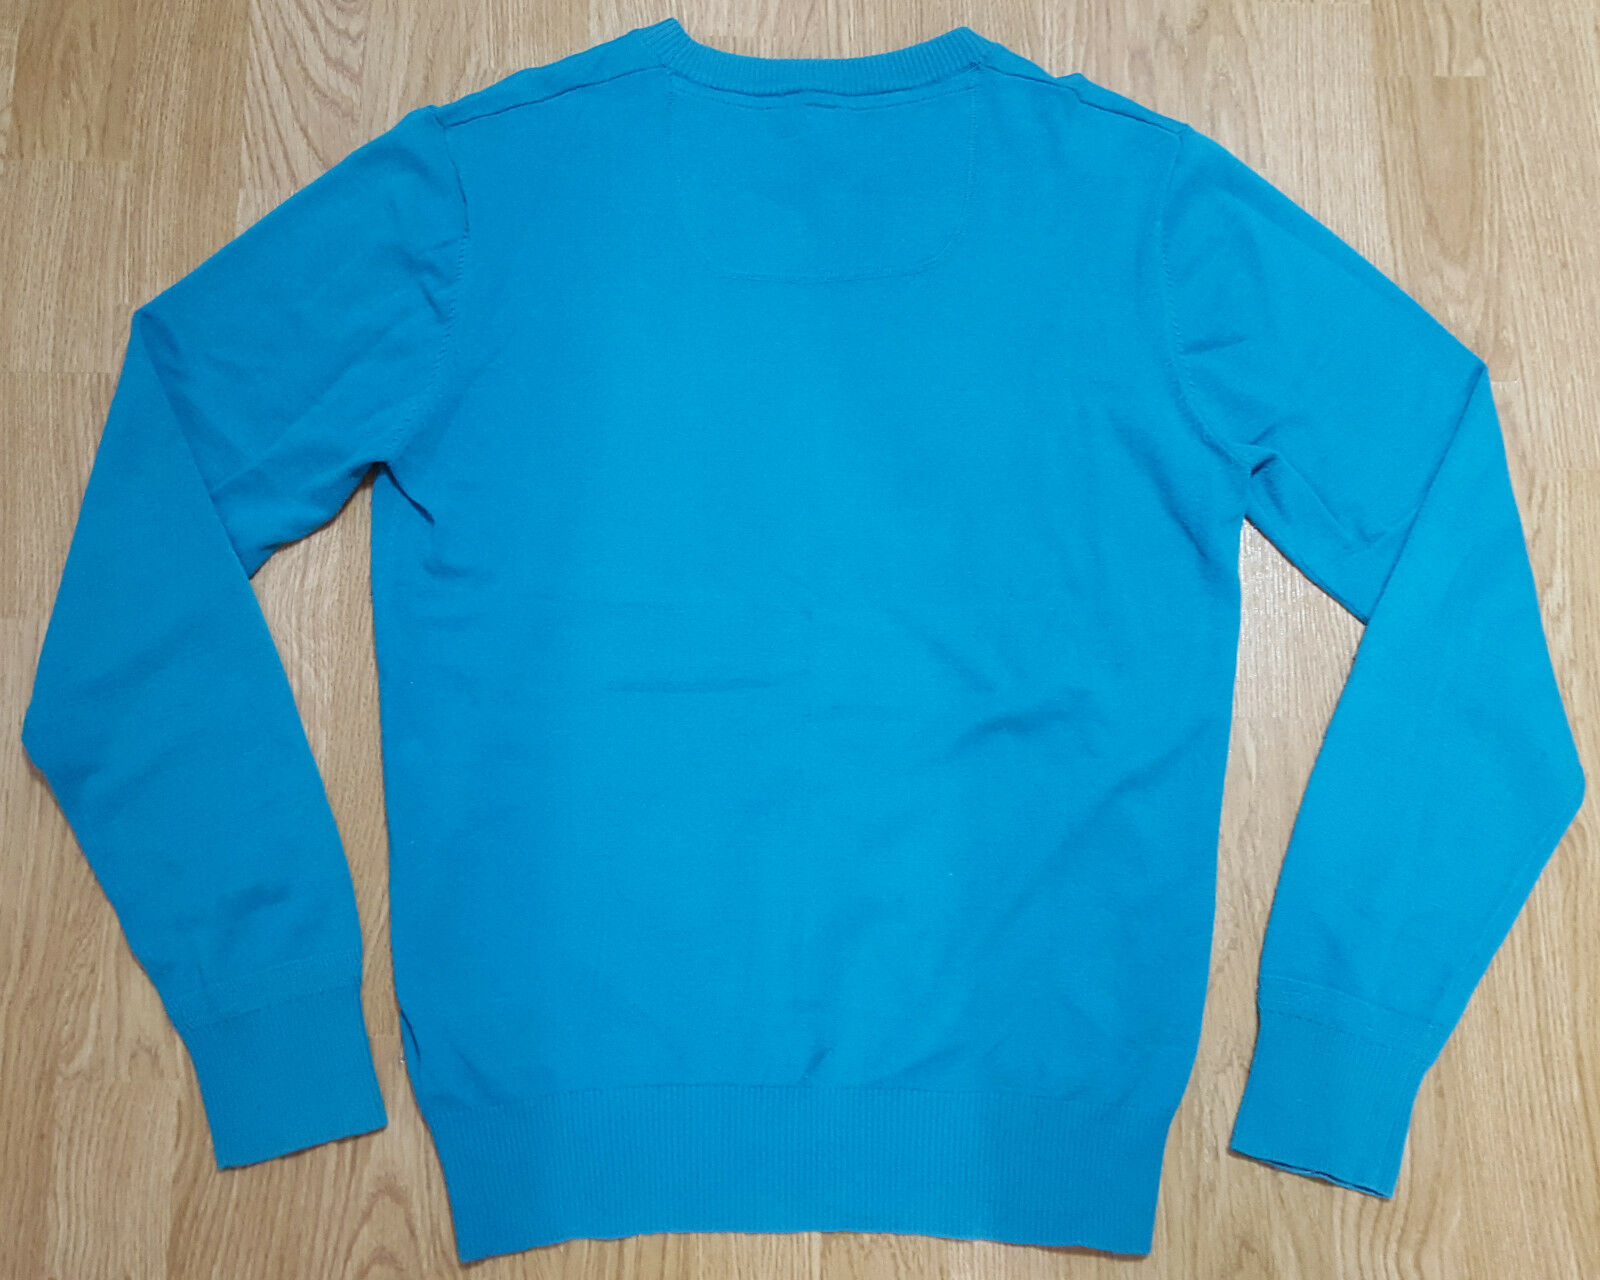 Diesel Tricot & Co Long Sleeve Jumper Jumper Jumper Top Knitted Cotton Turquoise Ladies Size M 9724a6